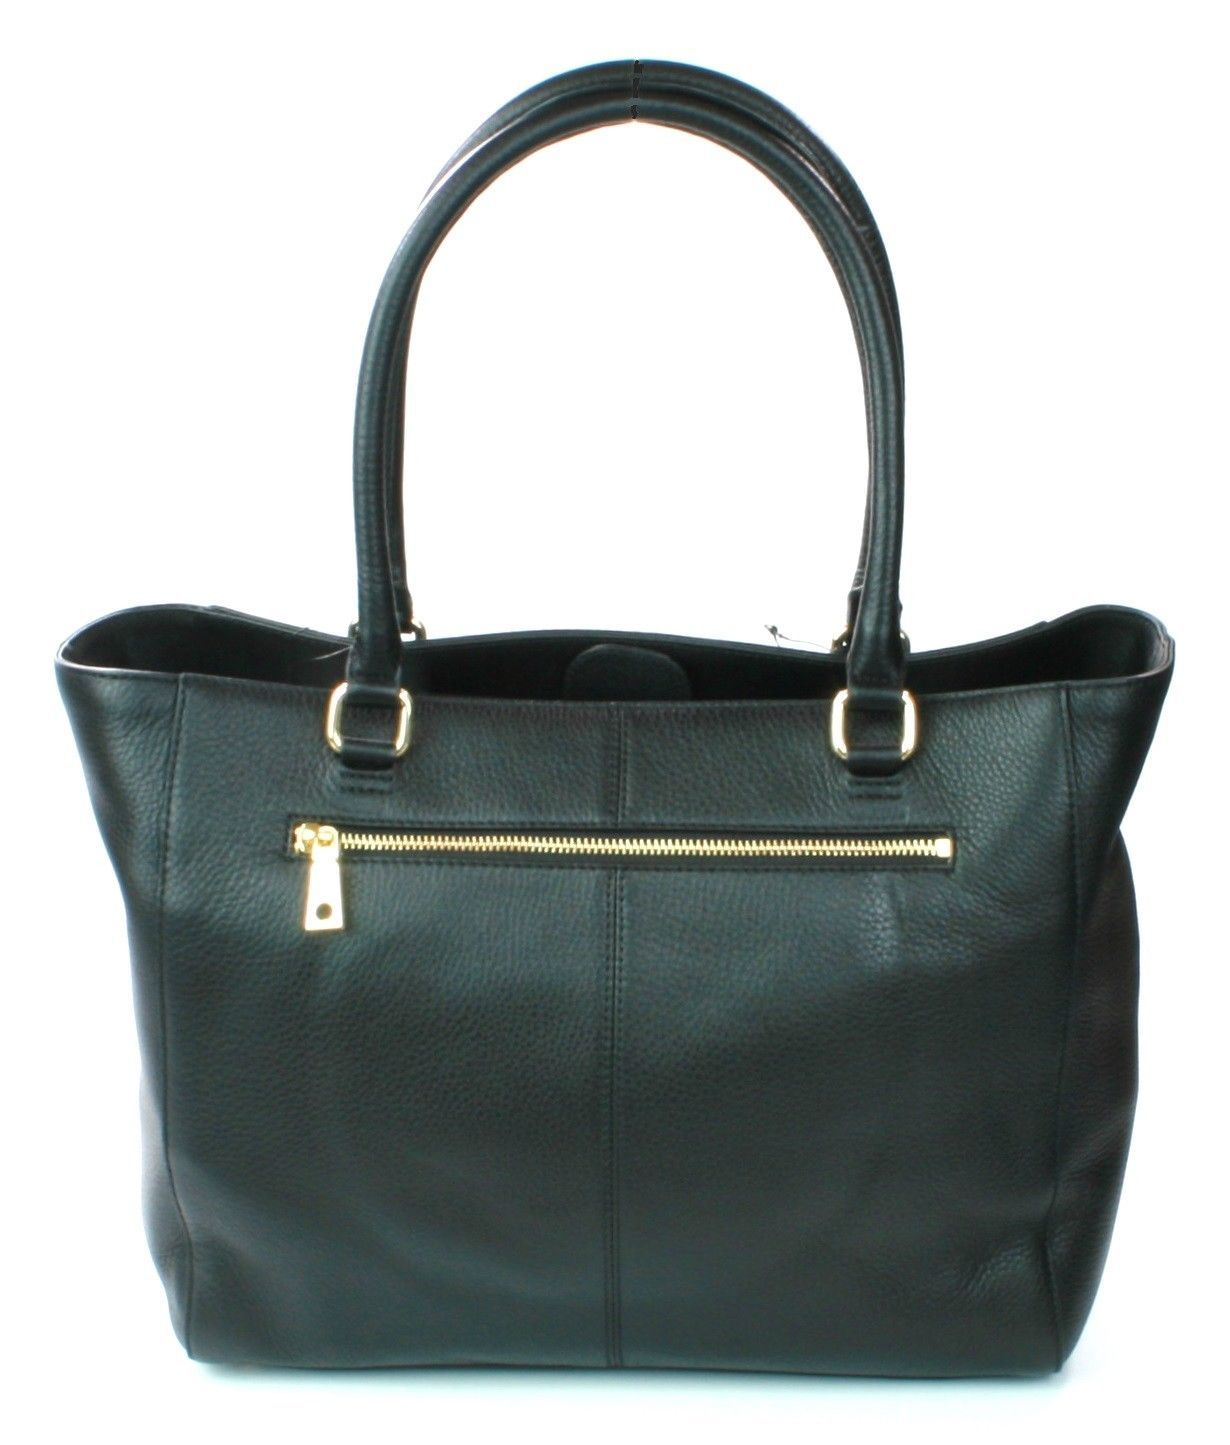 Donna Karan DKNY Black Leather Large Tote Shopper Bag Handbag Large RRP £325